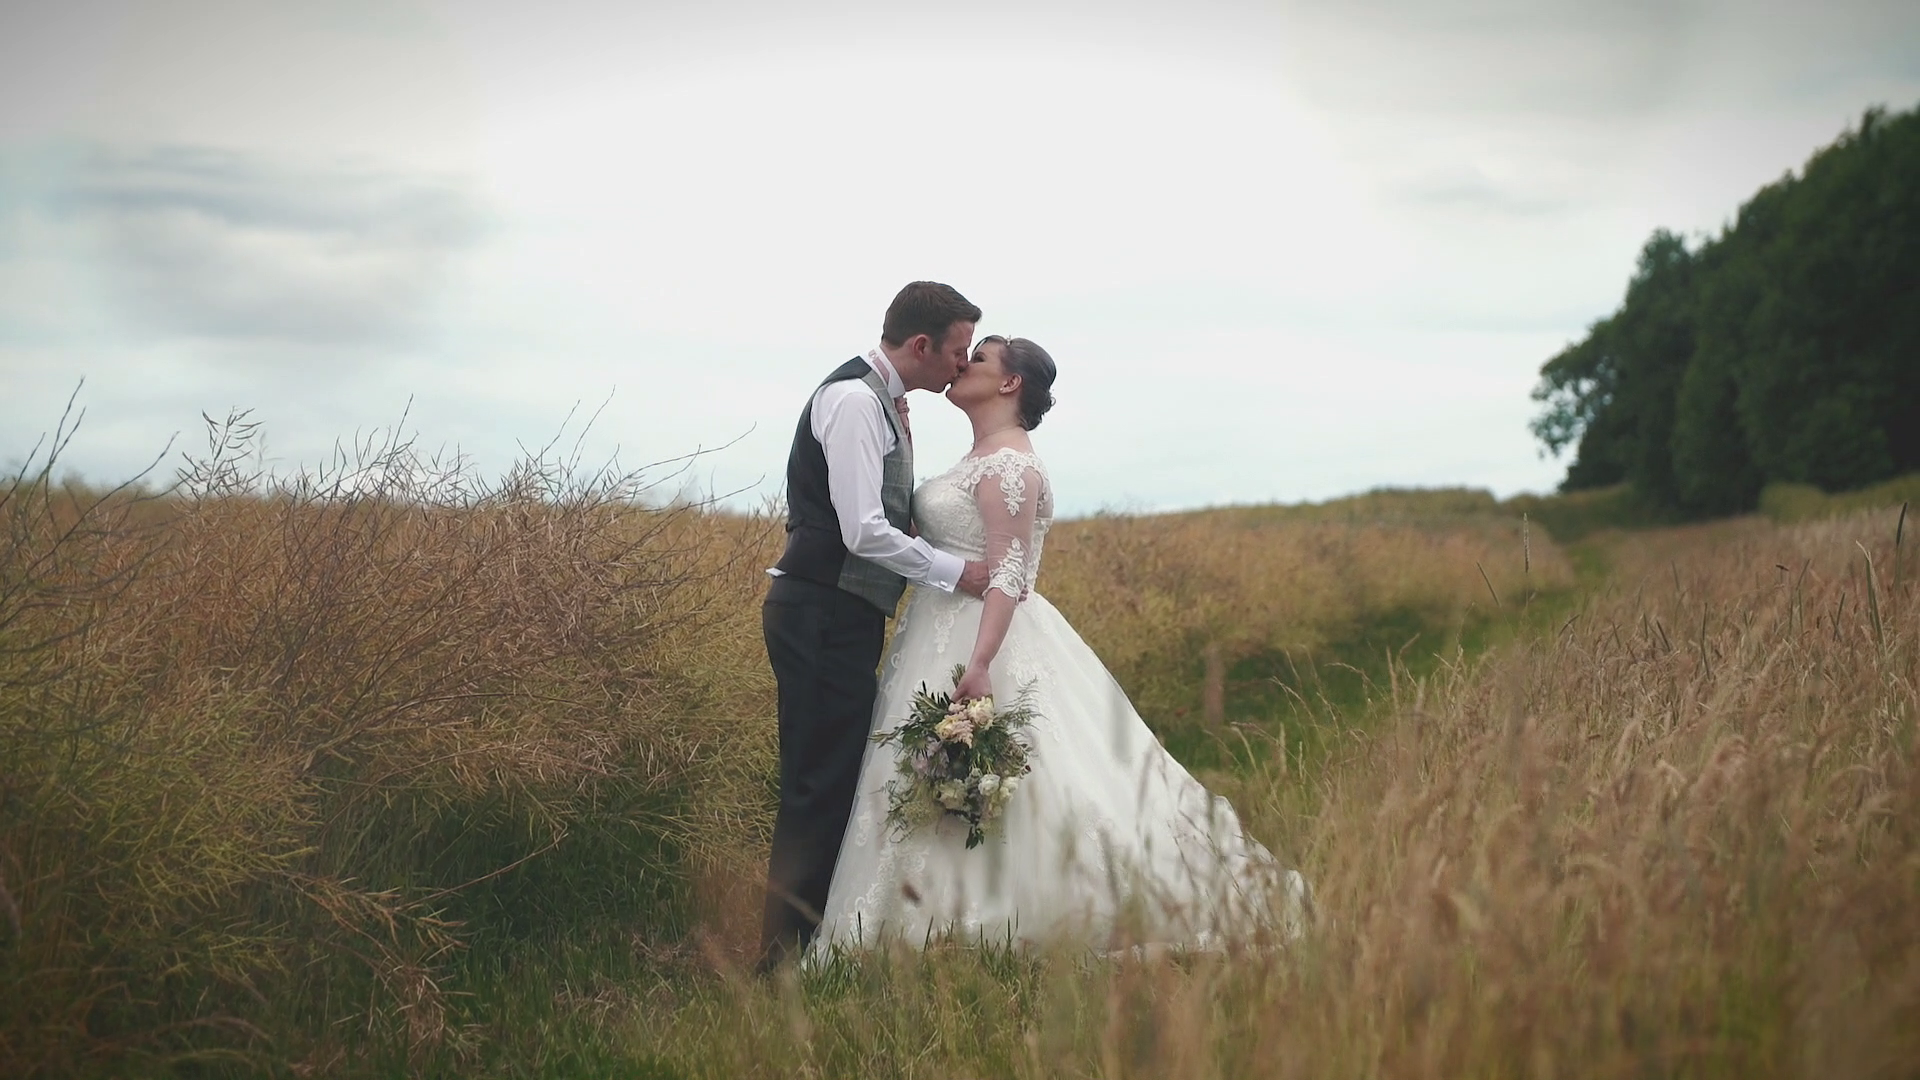 """Faye & Kev - """"WOW!!!! It's absolutely amazing and better than either of us could have dreamt of...Thank you so, so much for capturing our day/memories so perfectly, you've given us something beautiful that we can watch over and over again over the years to remind us of the best day of our lives."""""""